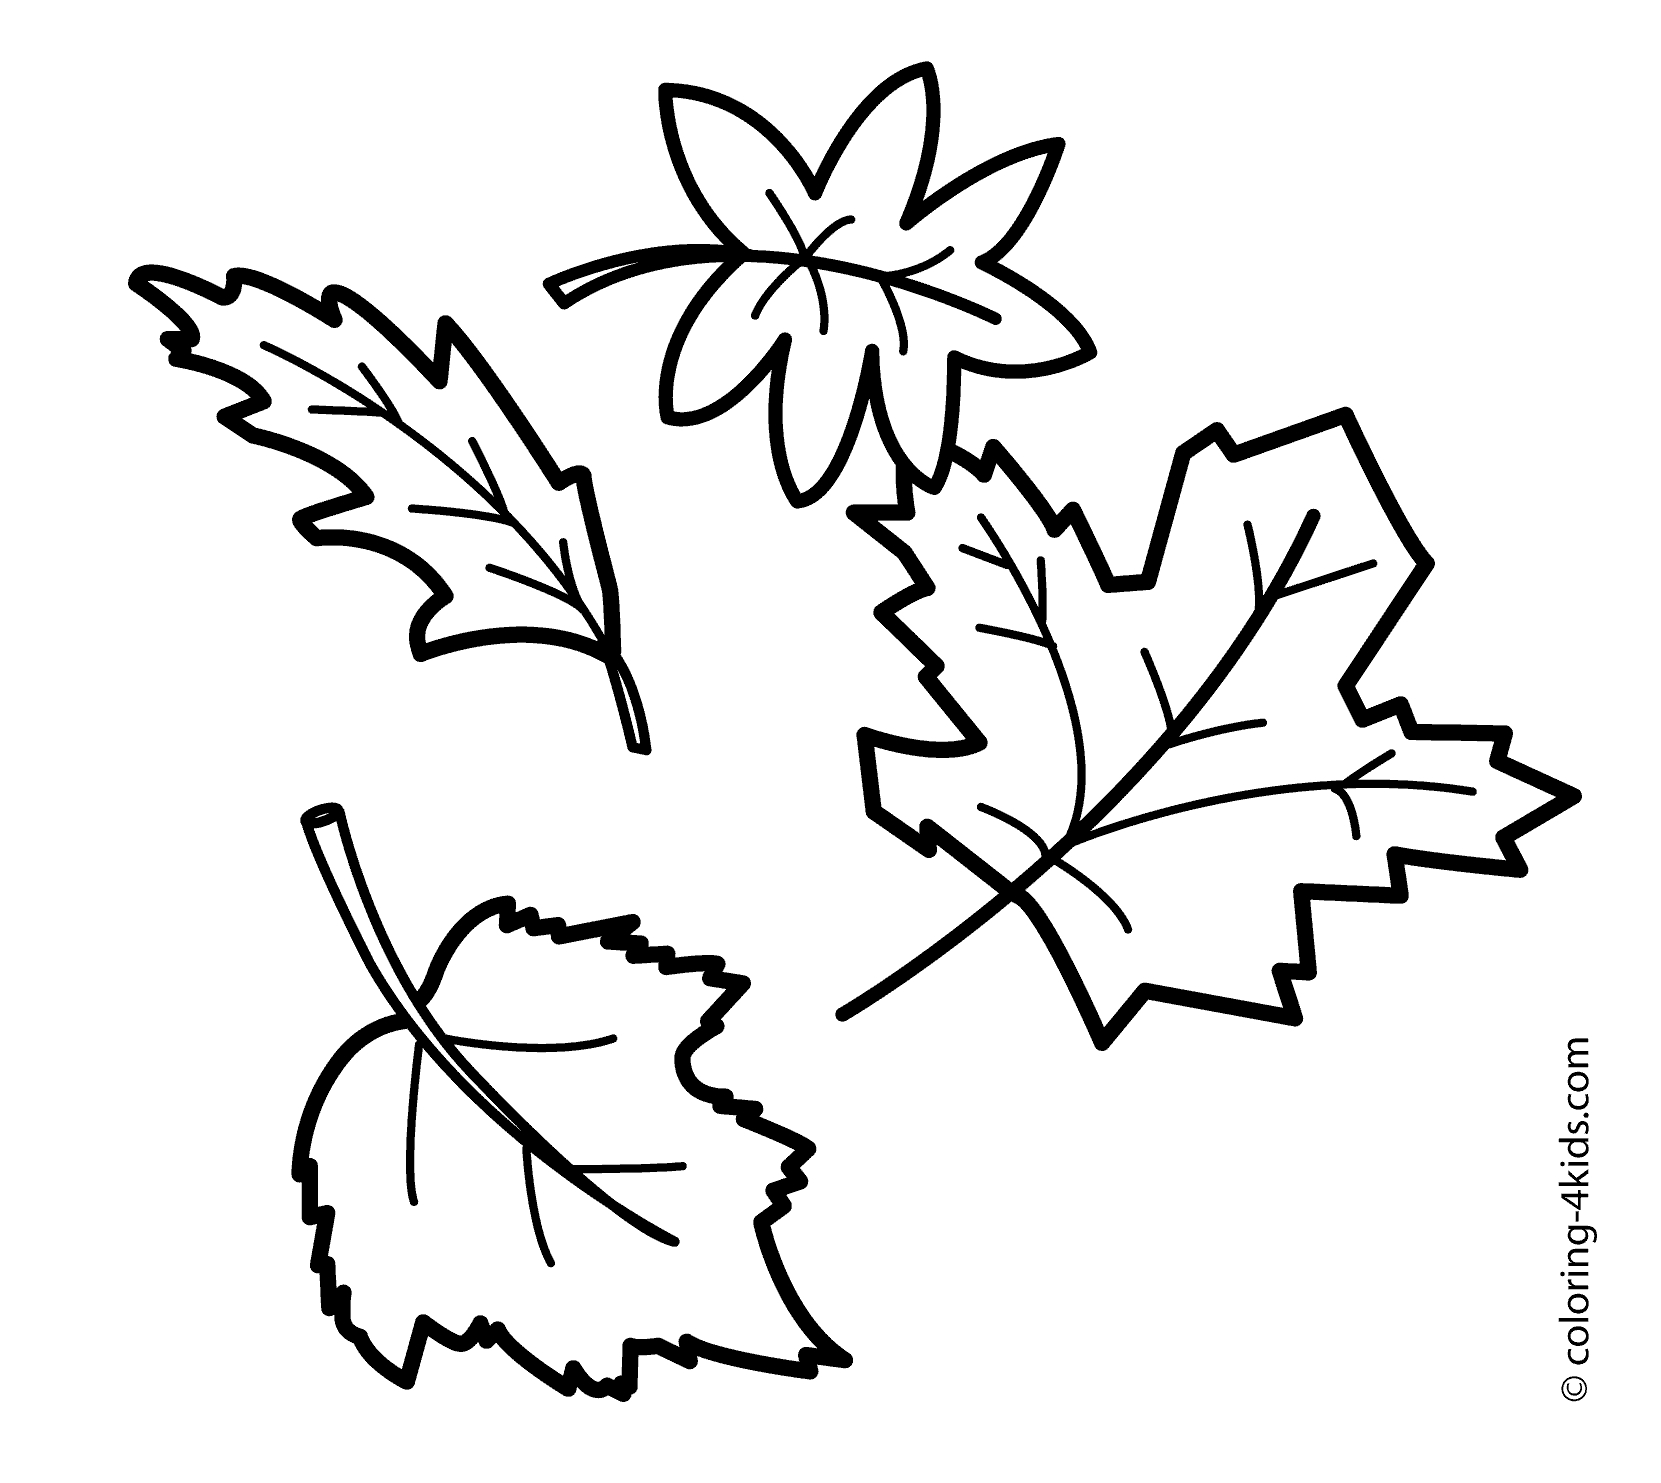 1661x1483 Fall Season Nature Printable Coloring Pages Fall Leaf Coloring